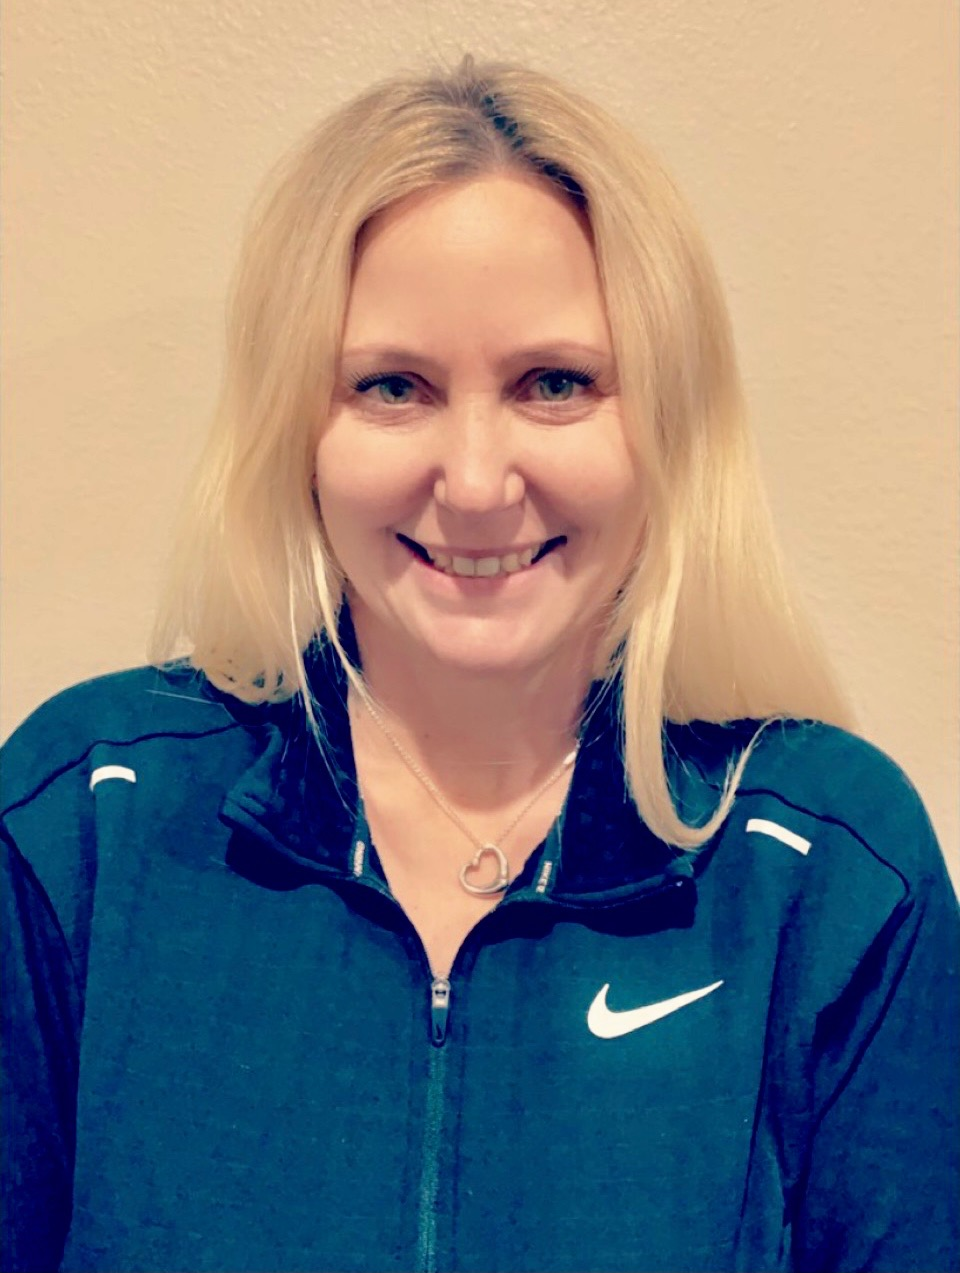 Christy Medlin Joins BOCA OC as the new Girls Program Director!